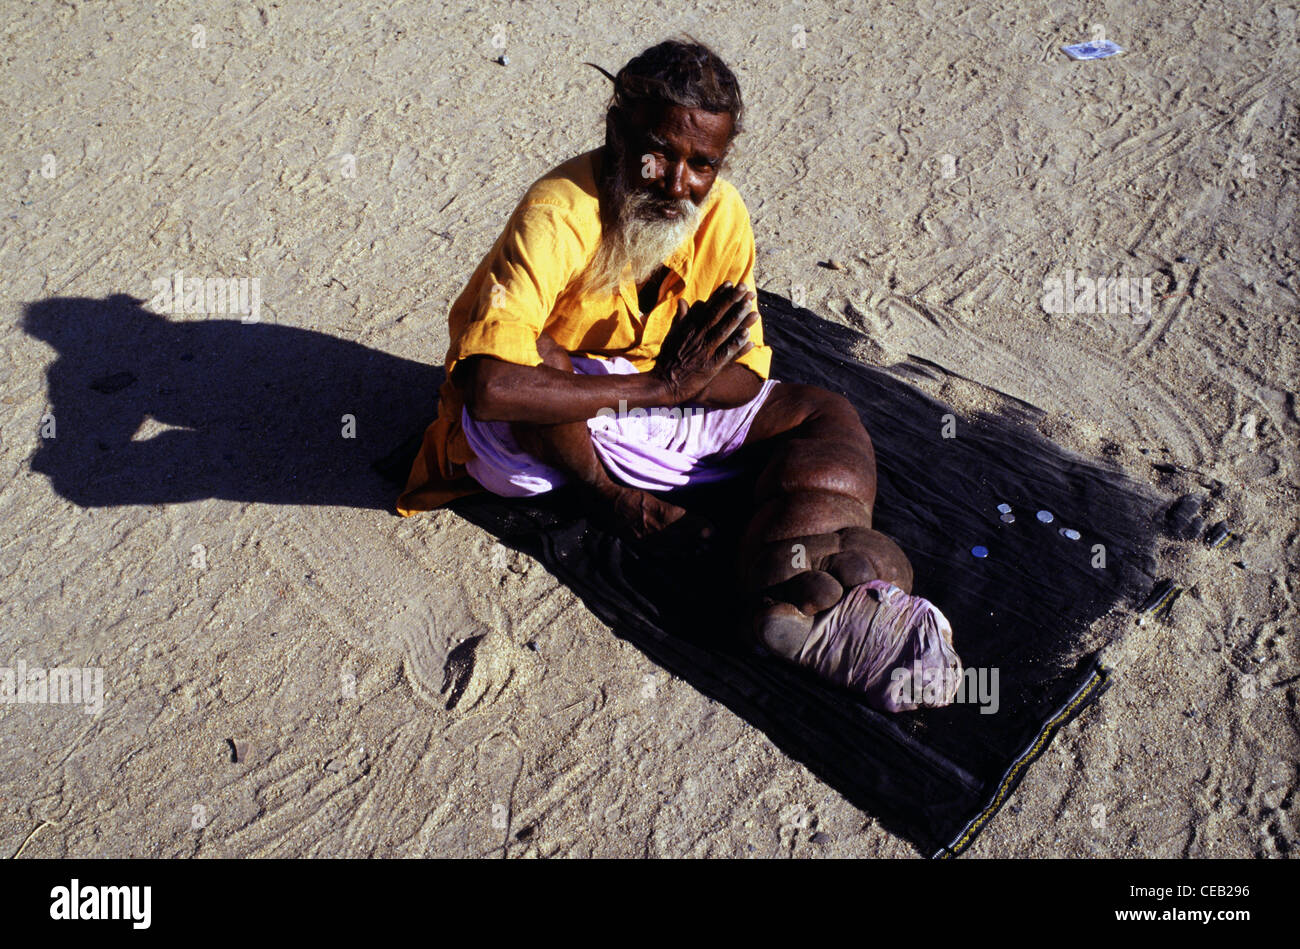 A mendicant with boated leg suffering from Elephantiasis disease begging in South India - Stock Image